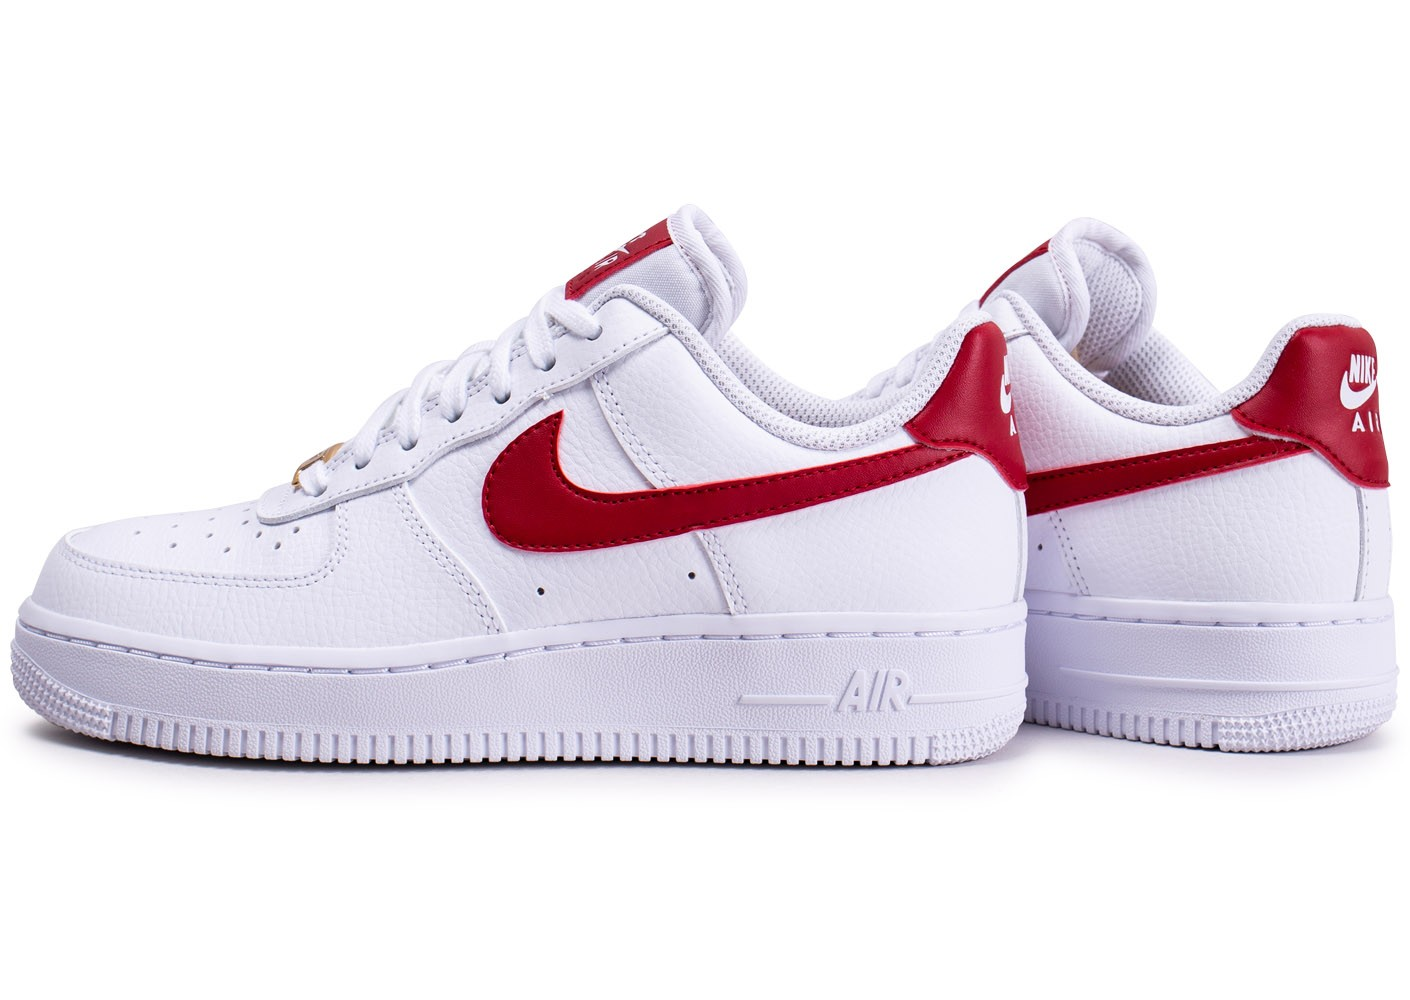 nike air force 1 femme blanche rouge